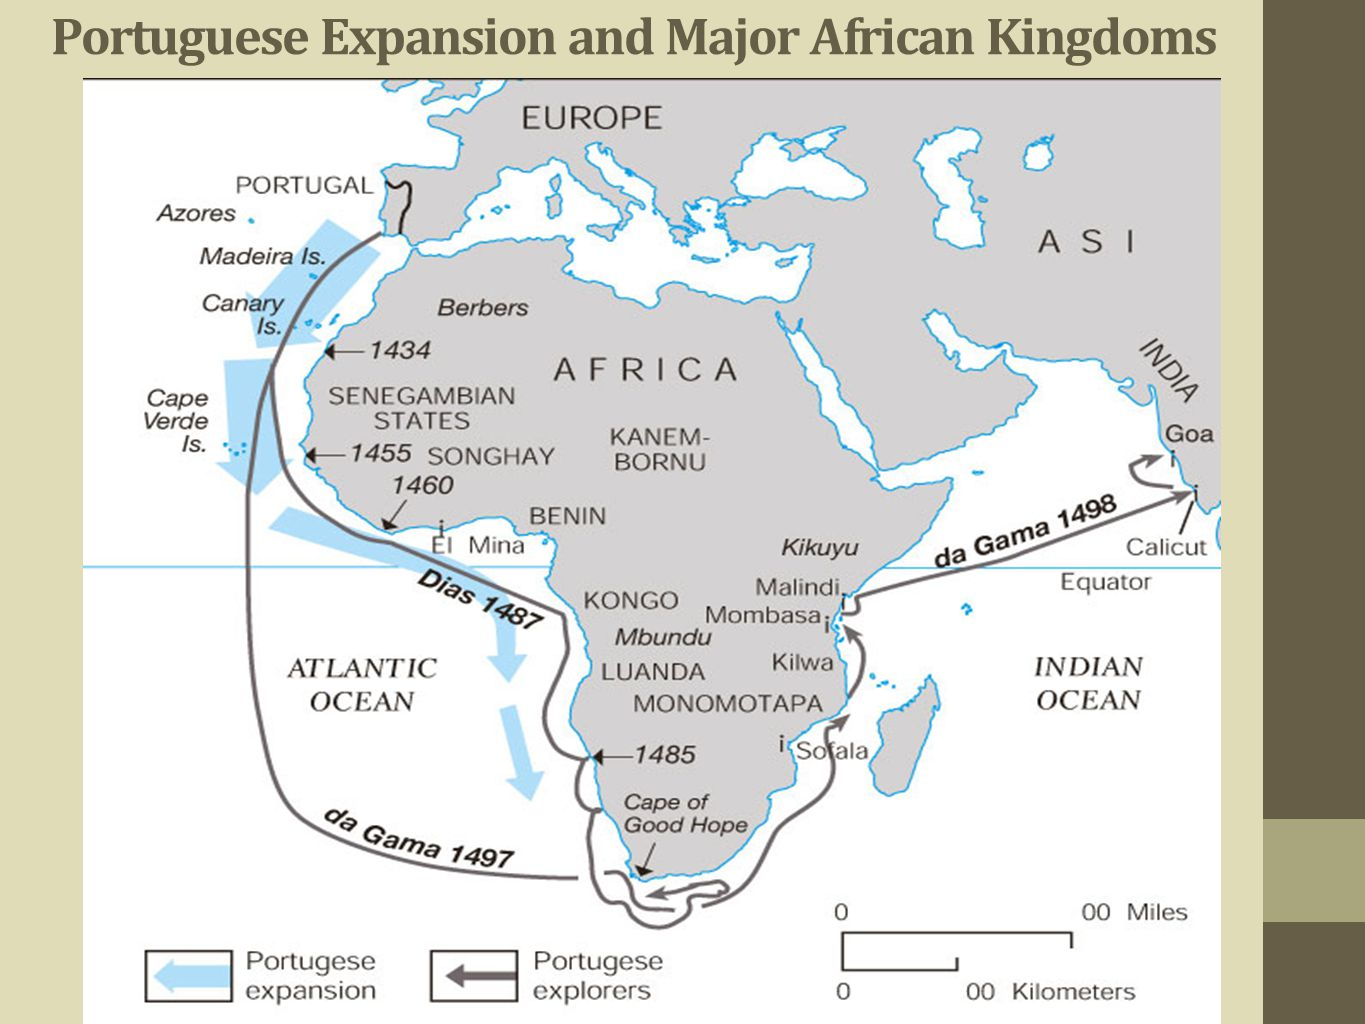 Portuguese Expansion and Major African Kingdoms